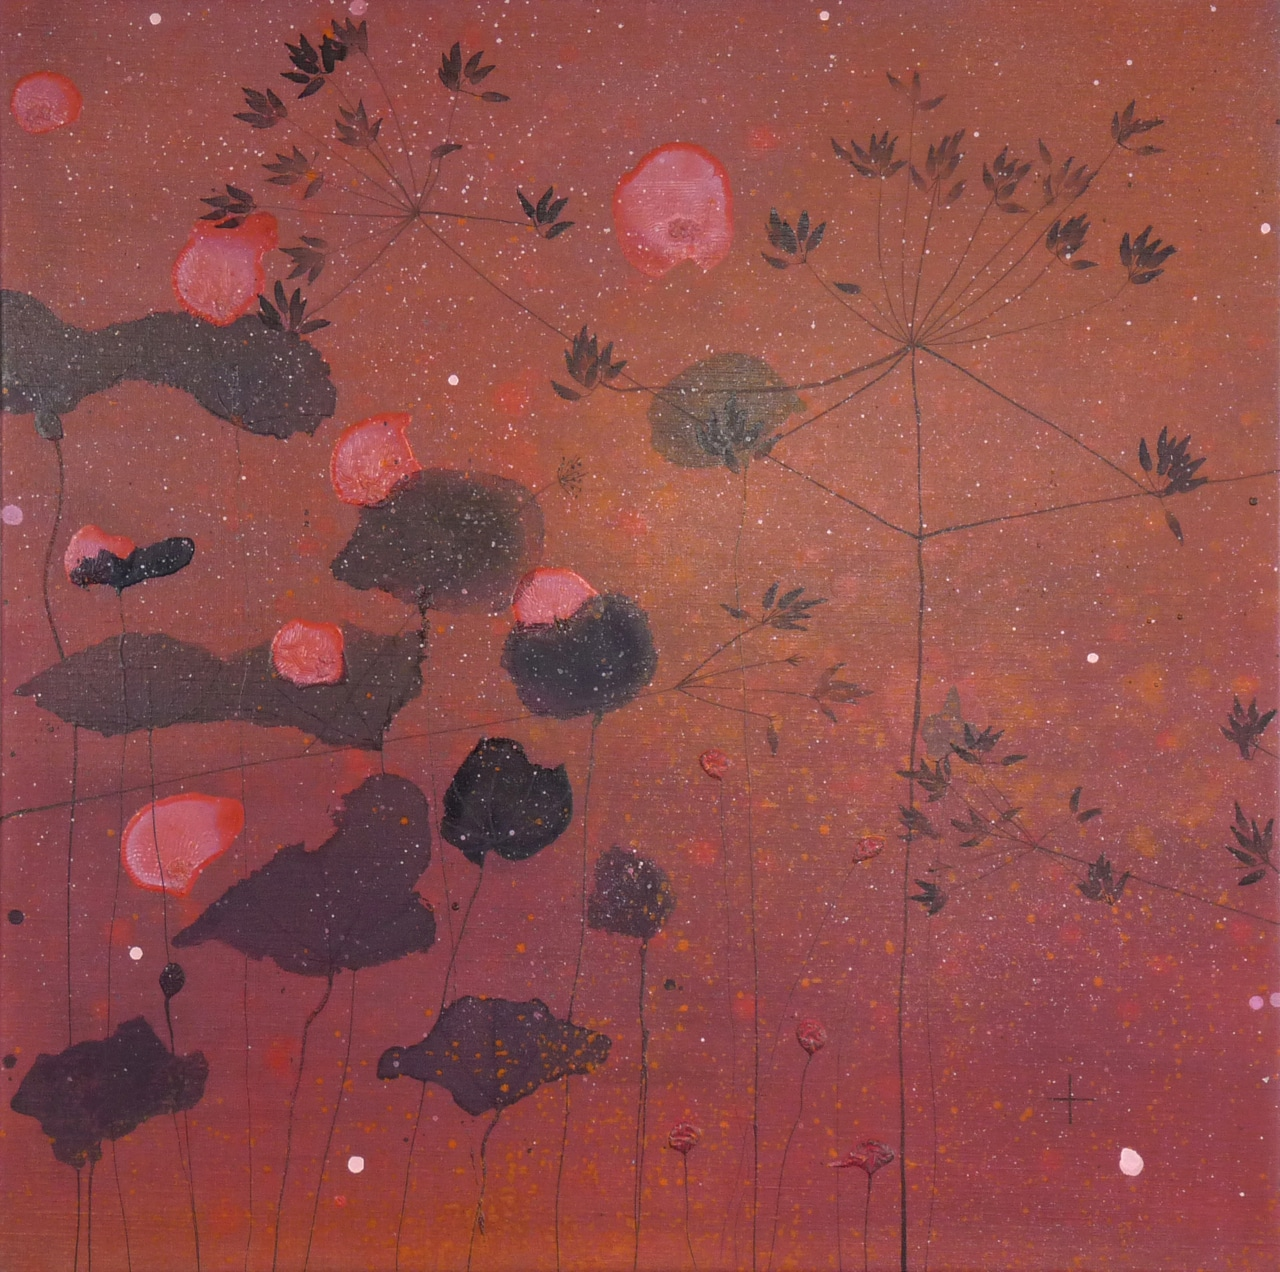 Where The Heart Blossoms | Gemengde technieken op doek | 100 x 100 cm | 2012